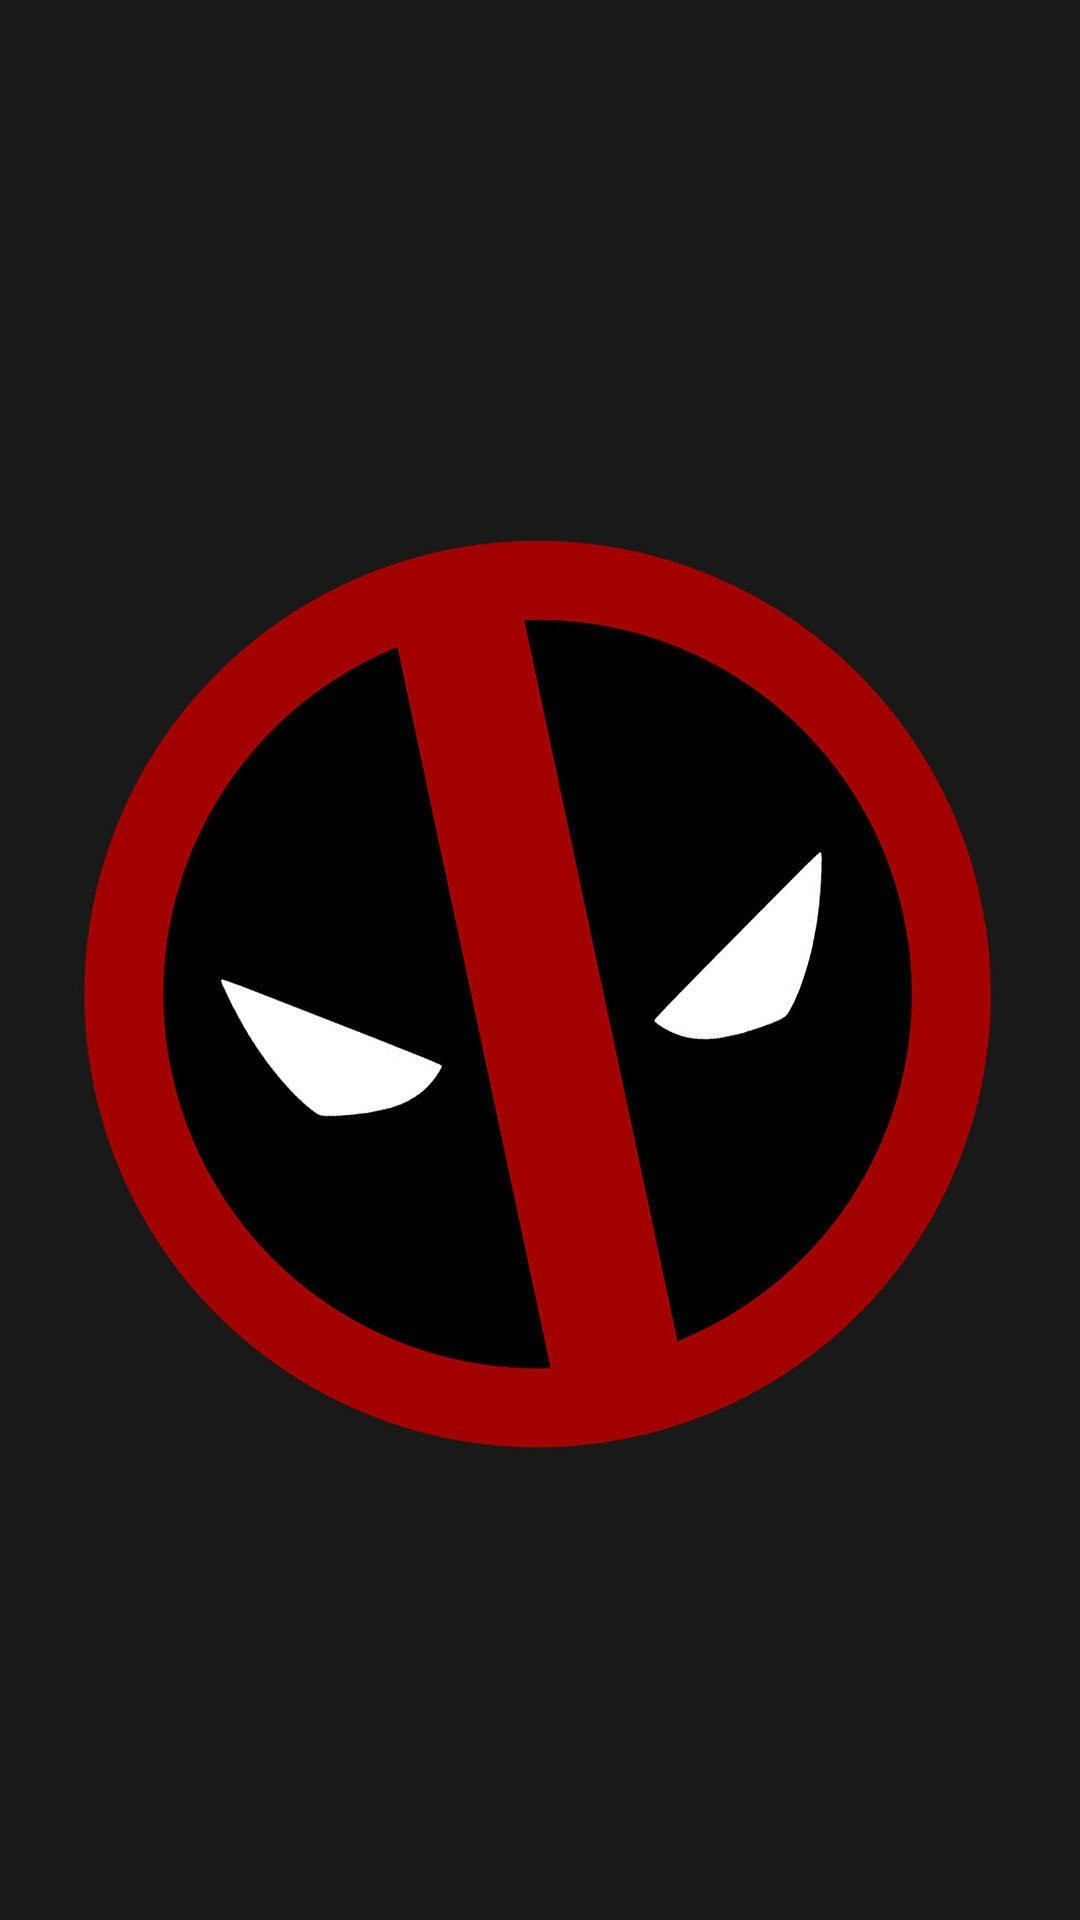 Deadpool iphone wallpaper iphone wallpaper deadpool iphone wallpaper voltagebd Choice Image